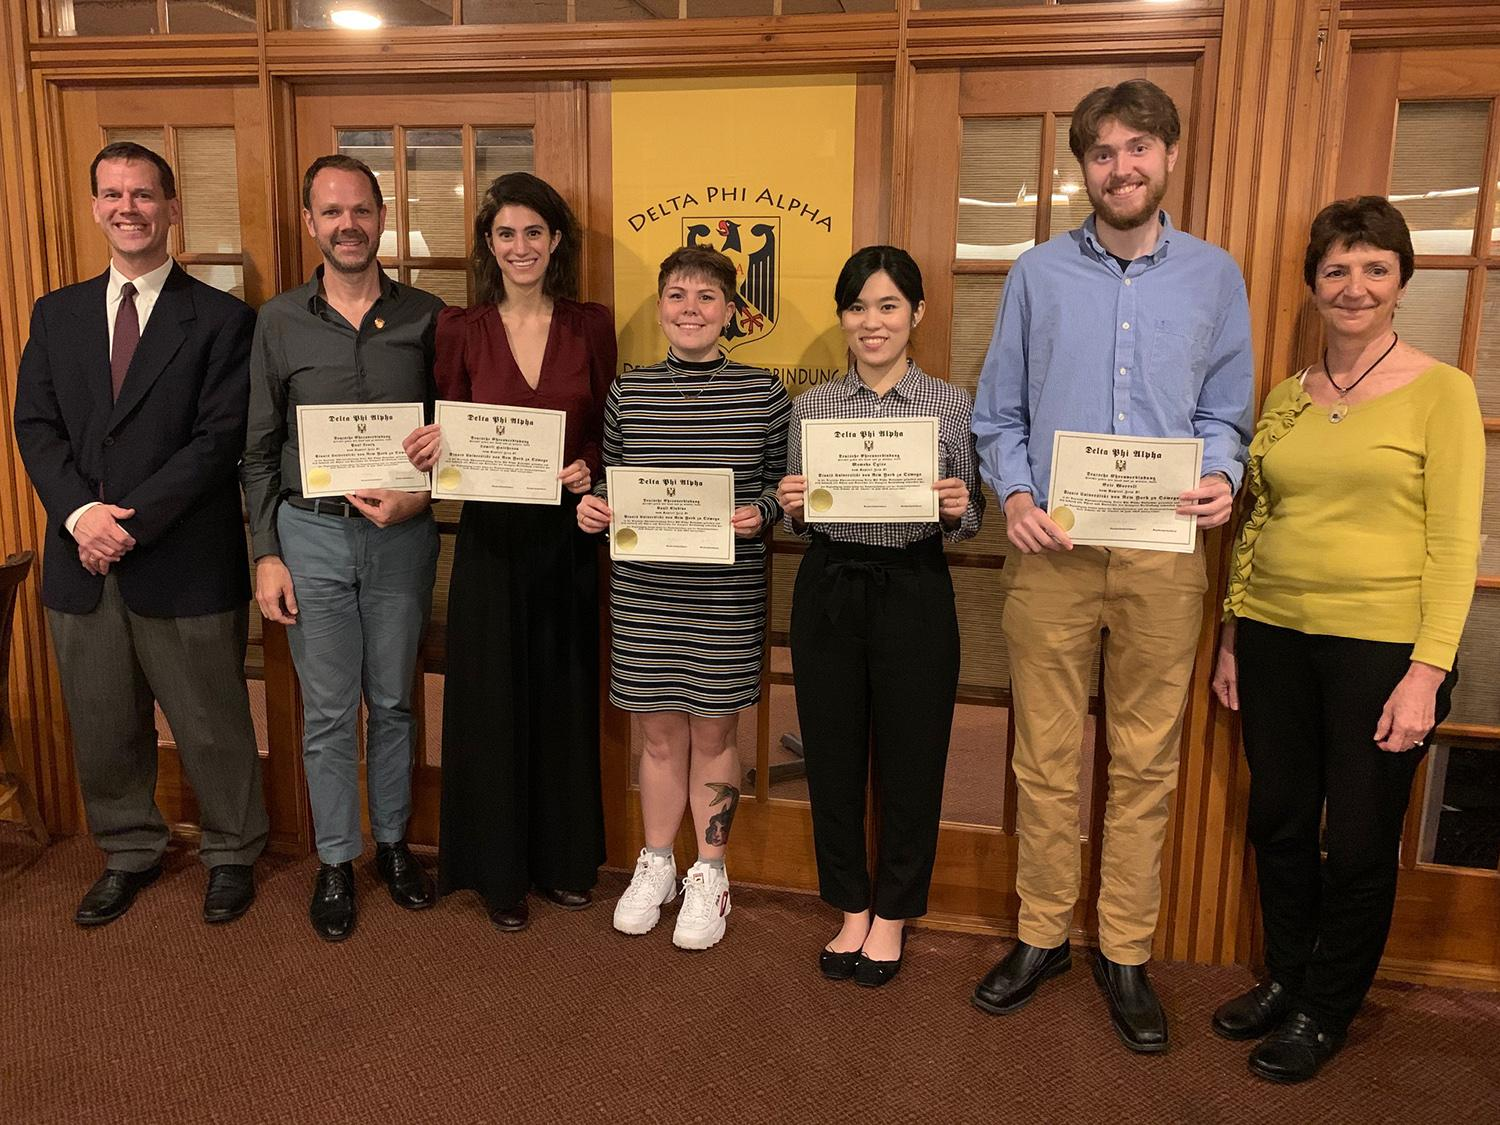 Students, employees honored by German honor society